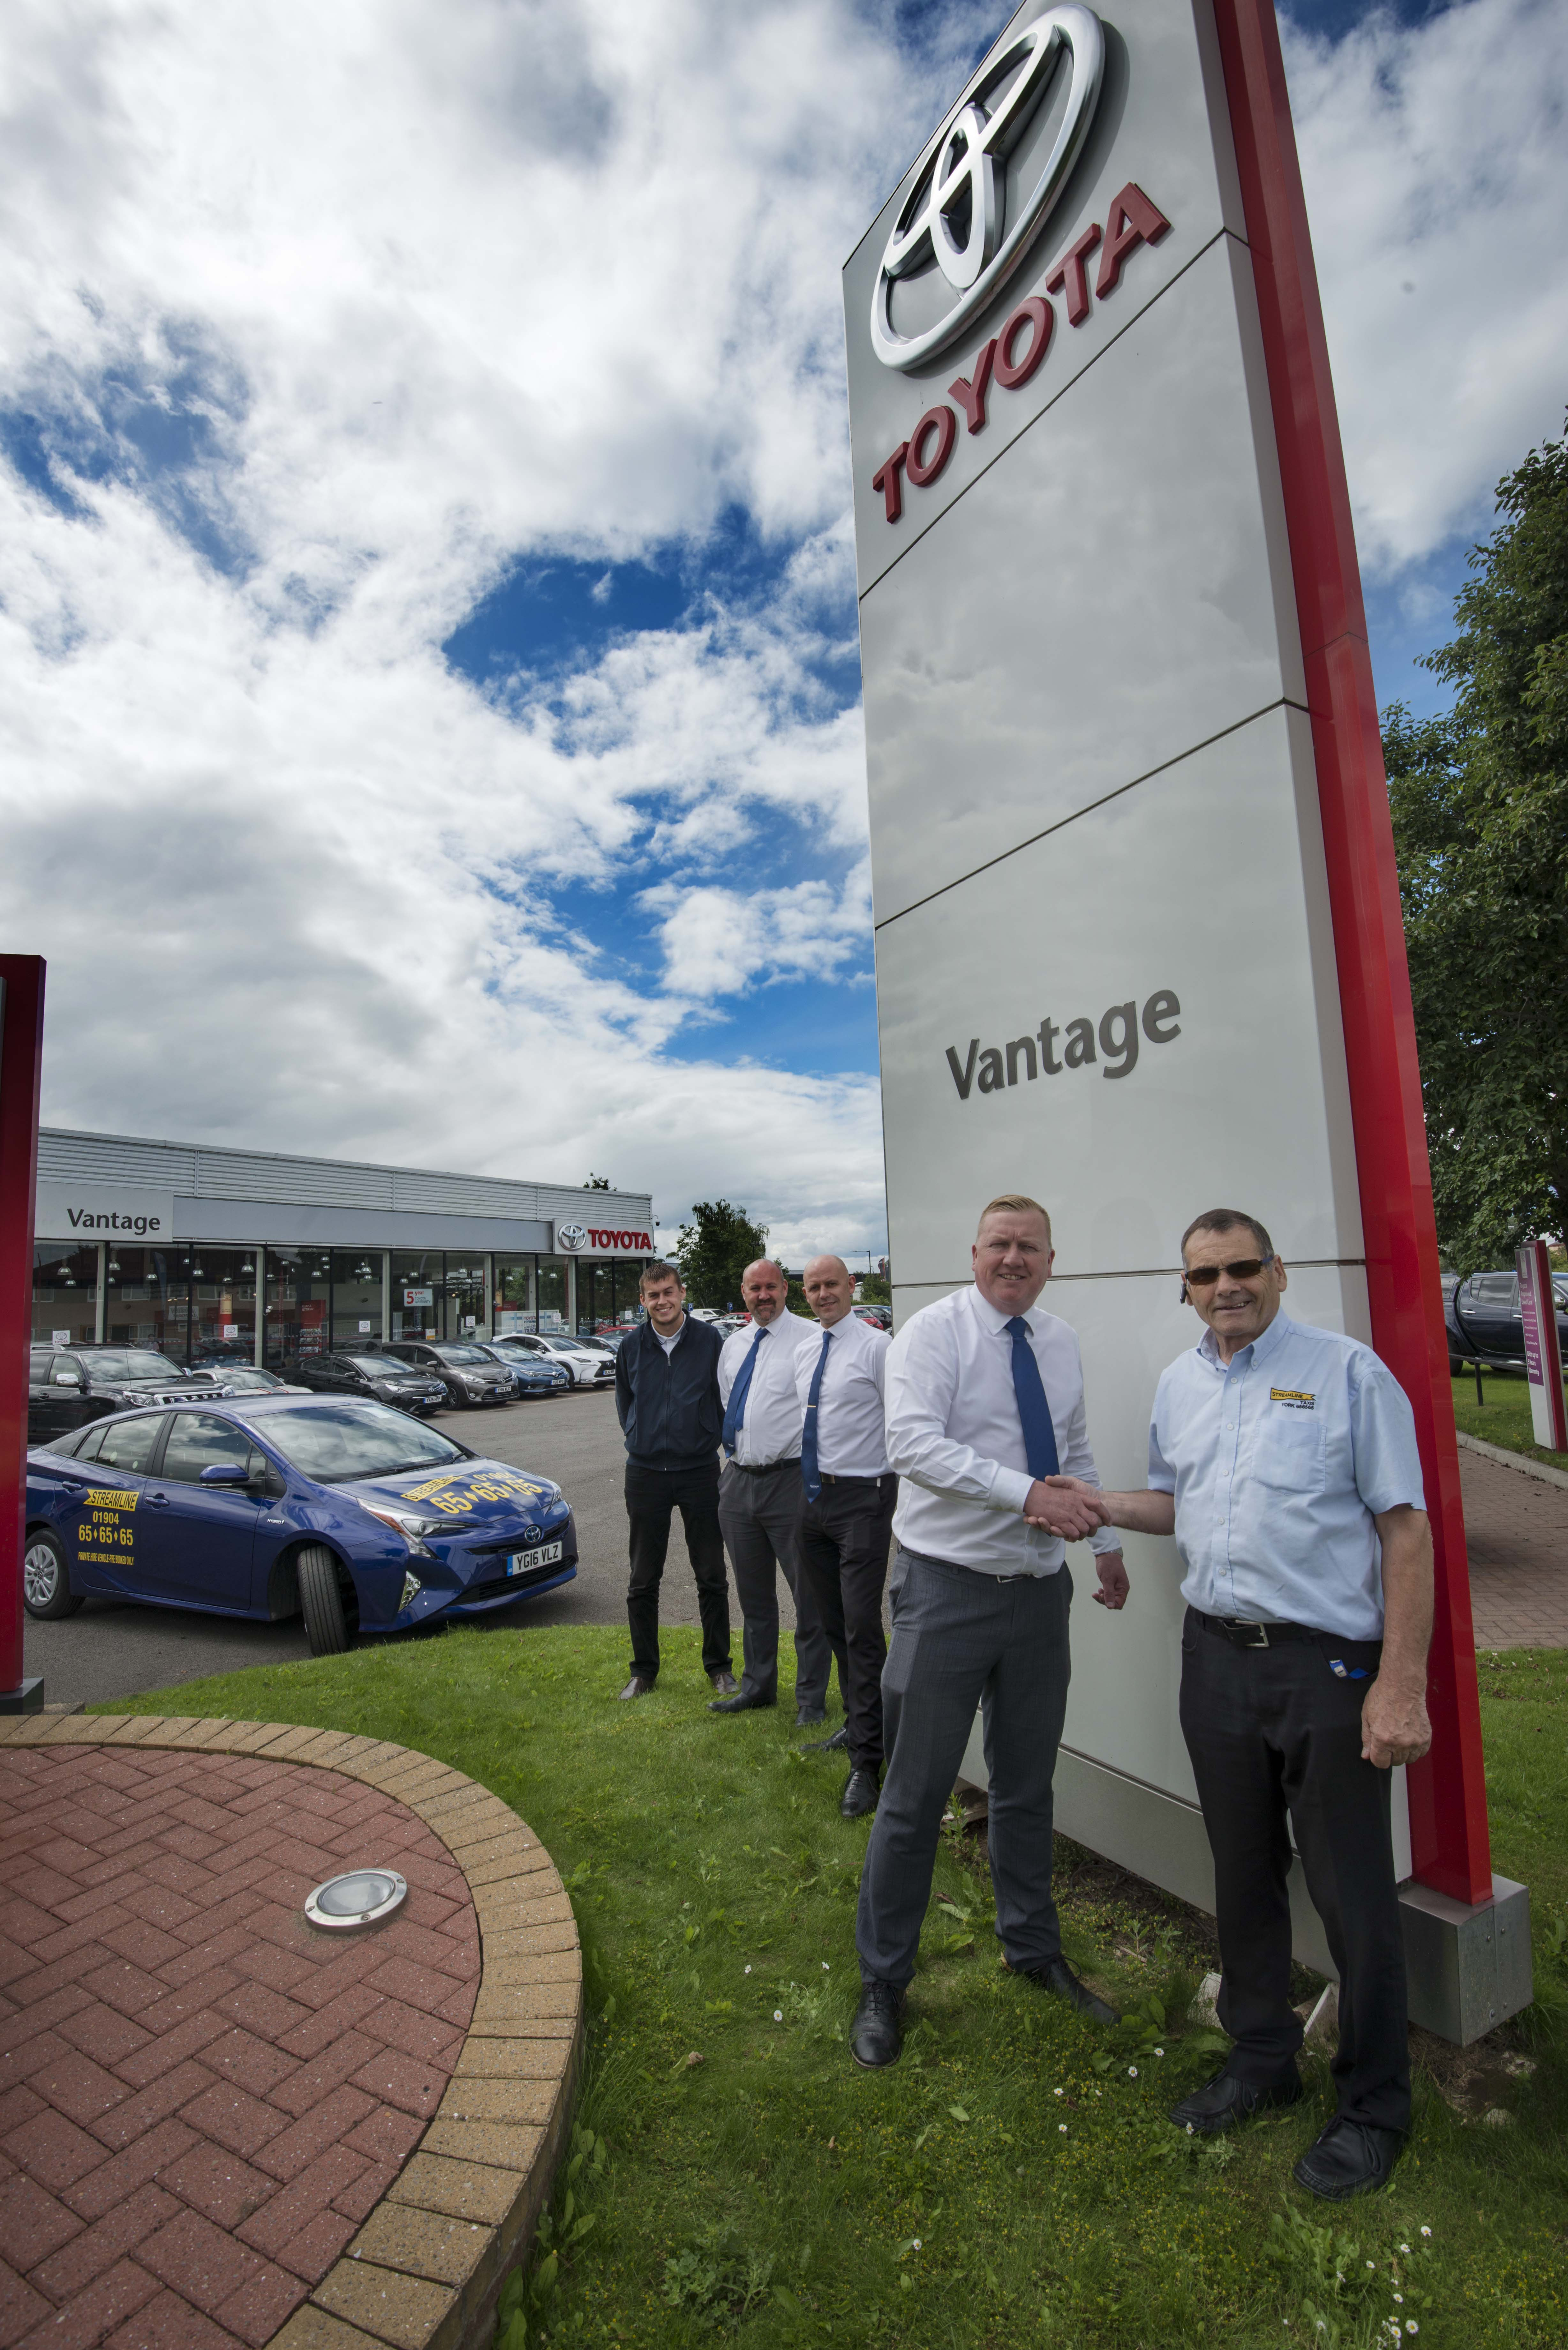 13 july 2016. Celebrating the link-up between Vantage Toyota, York, and York based taxi firm Streamline are, from the right, David Rhodes (Chairman of Streamline), Glen Ramskill (Centre Principal at Toyota York), Mark Chapman and Tom Wash (from Vantage), and Streamline driver Ben Wilson.